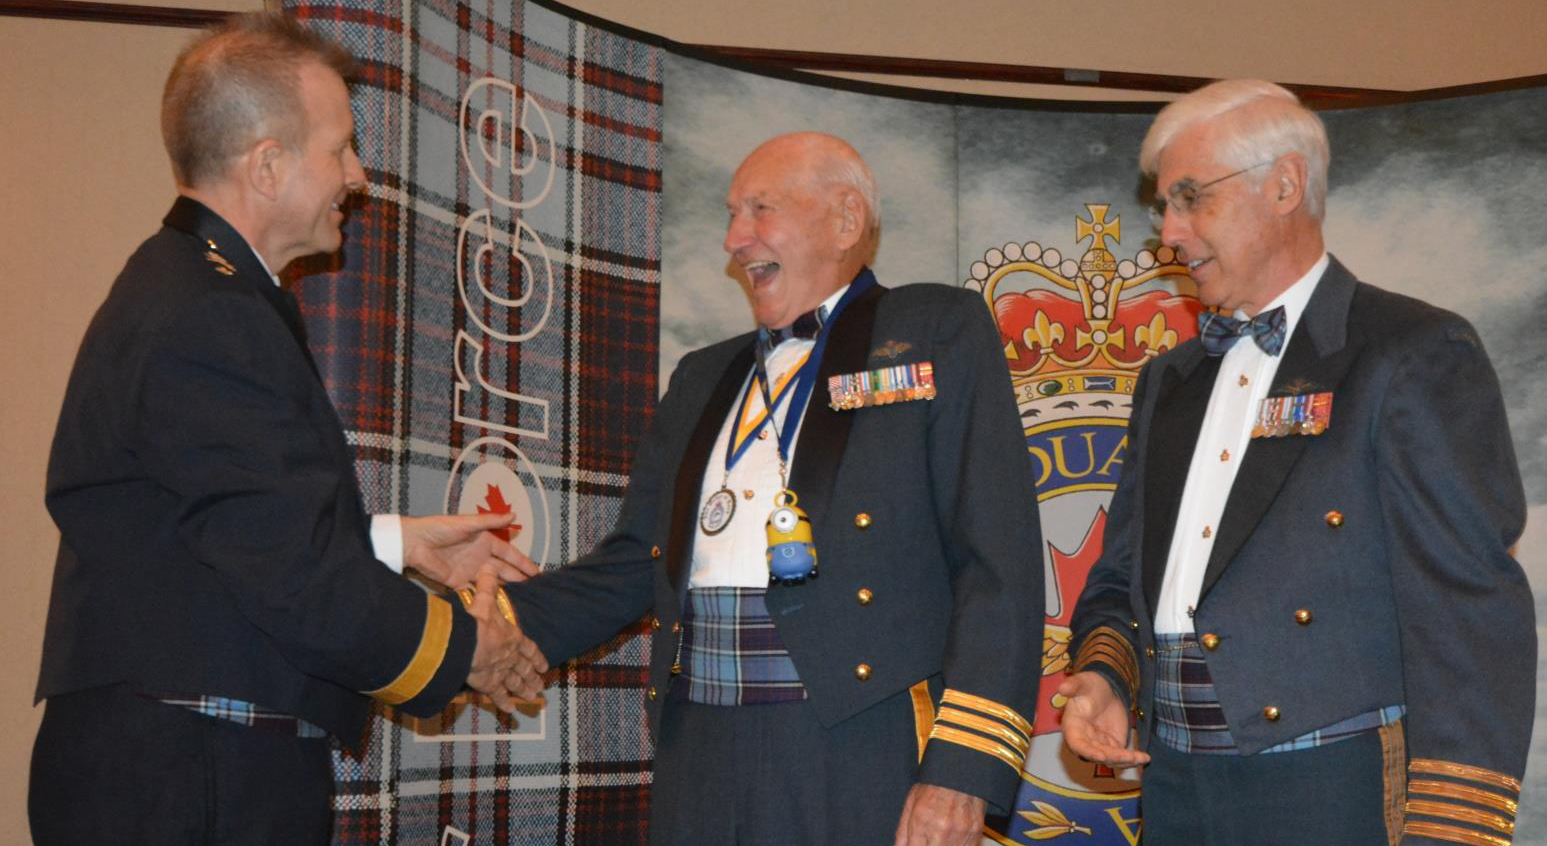 "Major-General William Seymour congratulates Lieutenant-Colonel (retired) Syd ""Cyclops"" Burrows on his induction to the newly-created and very informal ""Order of Kevin"" during the Royal Canadian Air Force Association's annual awards banquet in October 2016. Colonel (retired) Terry Chester, national president of the Association, stands by to offer his congratulations. Lieutenant-Colonel Burrows, like Kevin the Minion, has only one eye – the result of a bird strike while he was flying an F-86 Sabre in Europe in the 1950s. PHOTO: Lieutenant-Colonel (retired) Dean Black, RCAFA"